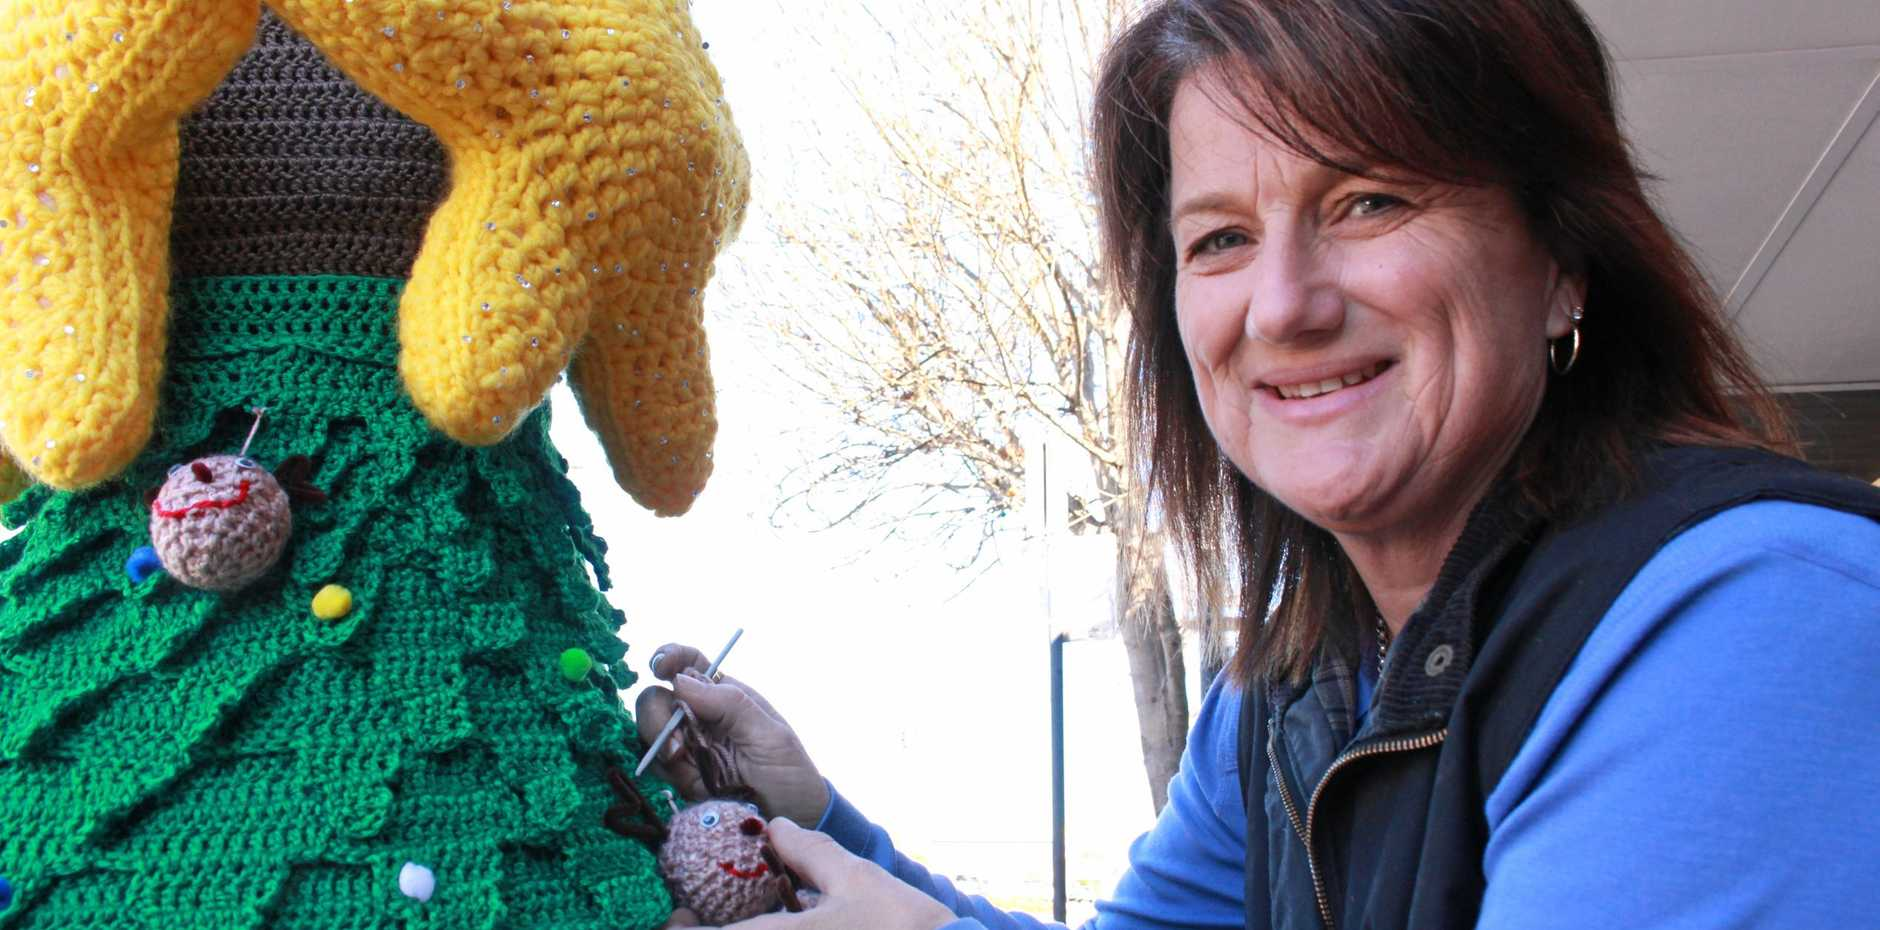 STAR SHINE: Coffee and crocheting has united a group of ladies from Warwick, who have just put up their 11th tree in the Tree Jumpers exhibition.